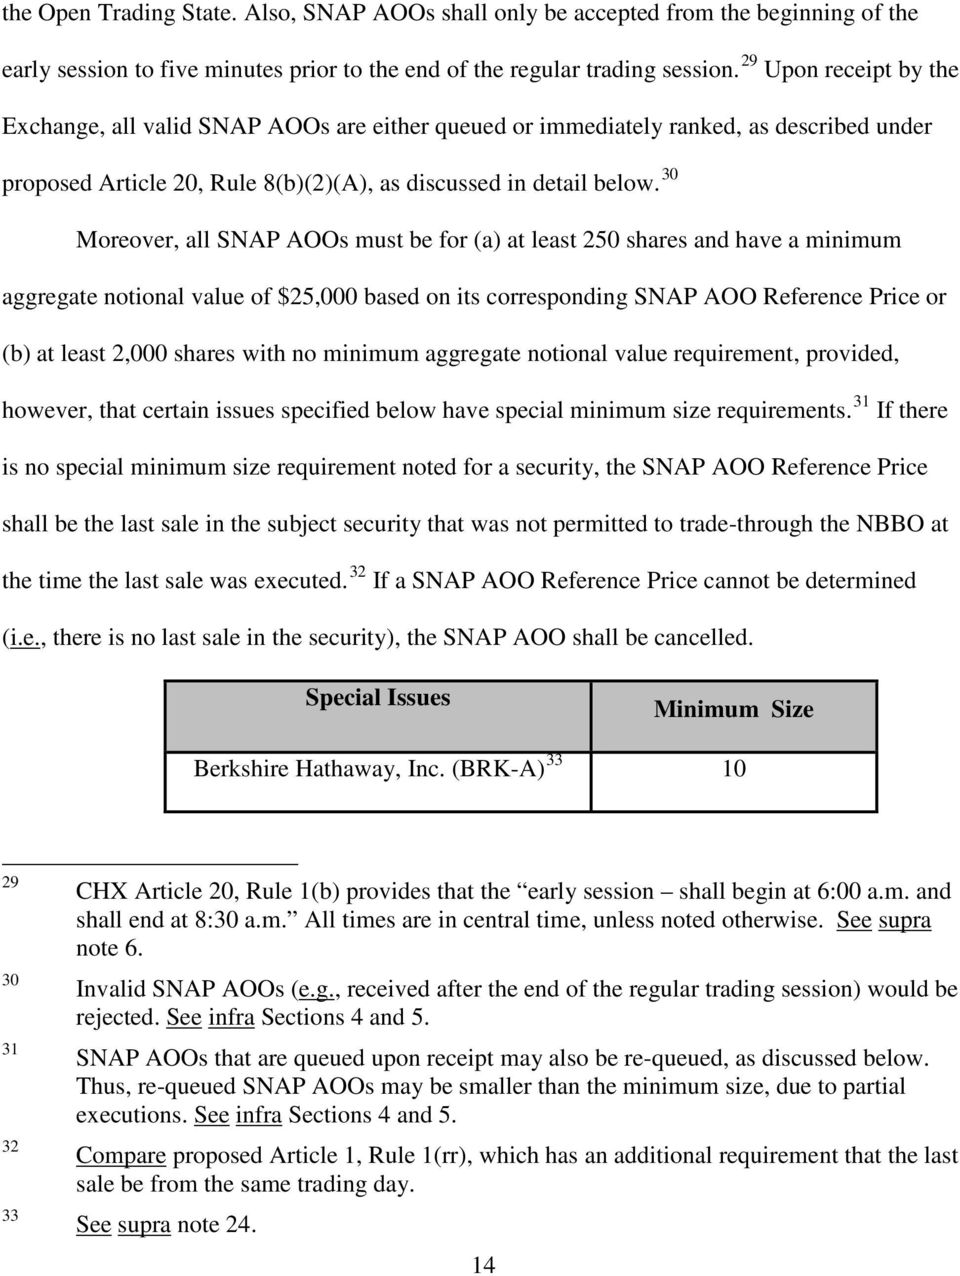 30 Moreover, all SNAP AOOs must be for (a) at least 250 shares and have a minimum aggregate notional value of $25,000 based on its corresponding SNAP AOO Reference Price or (b) at least 2,000 shares